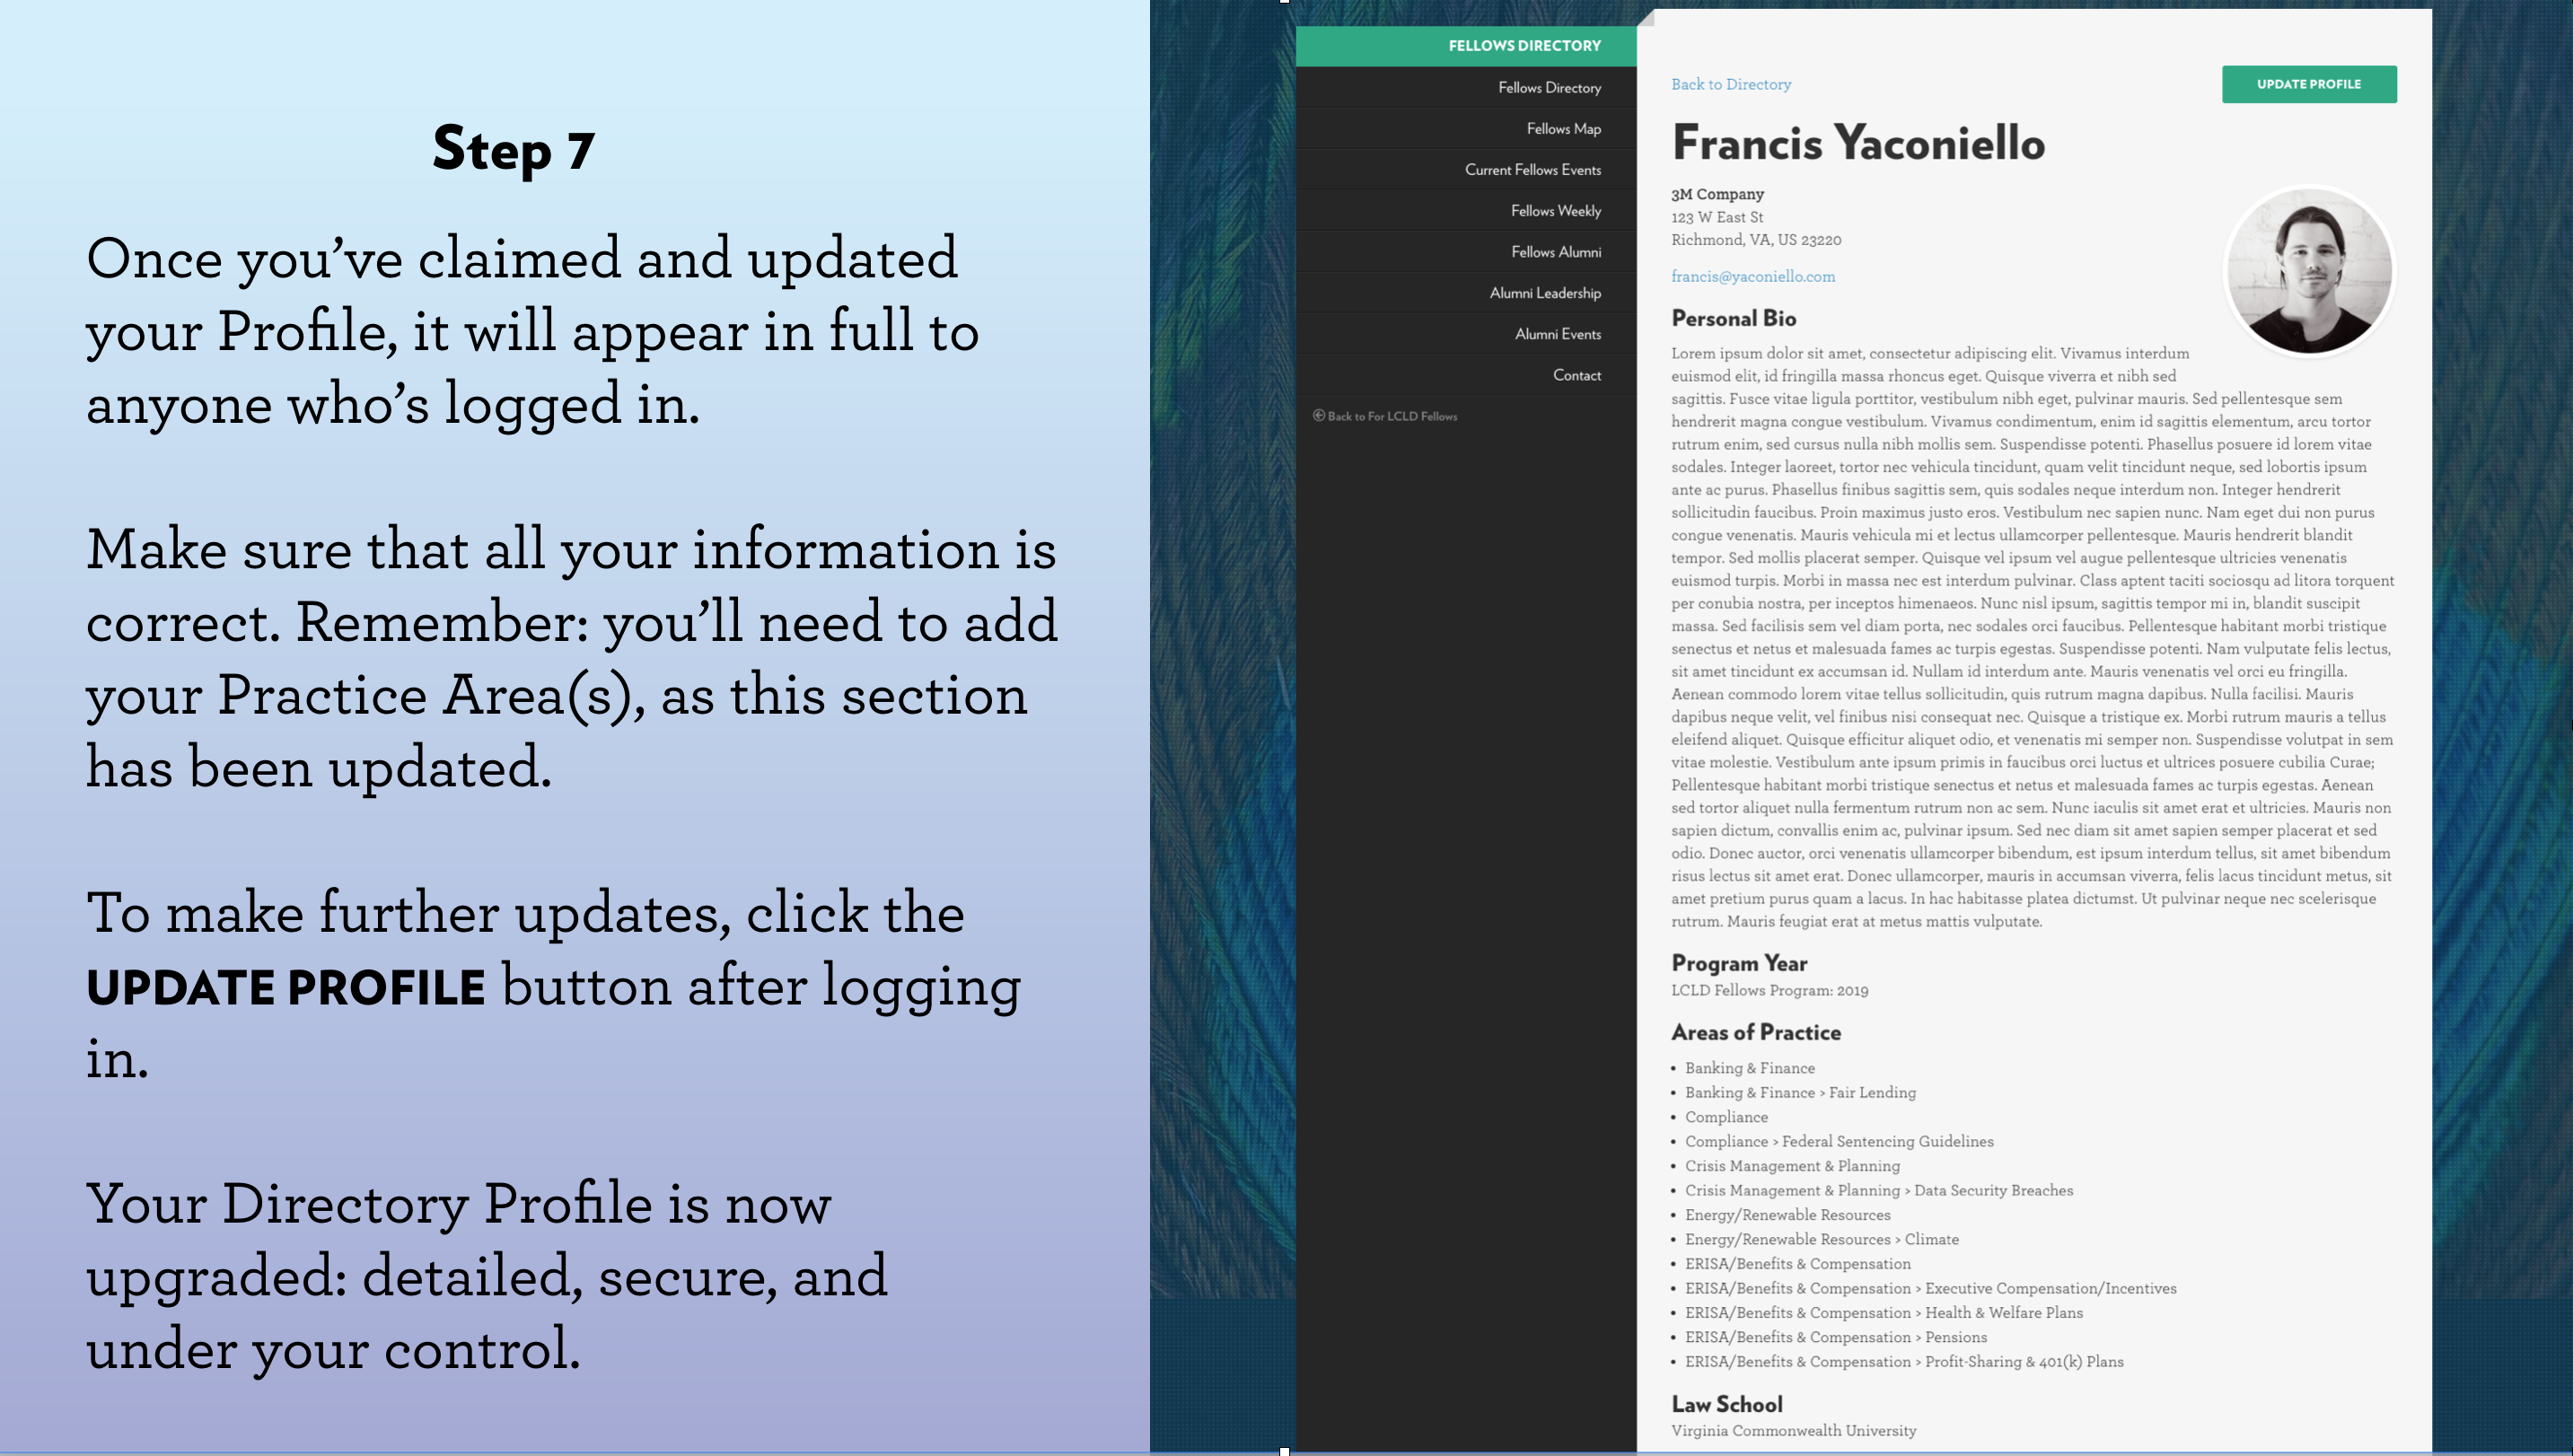 Introducing Upgraded Directories for Fellows and Pathfinders   News